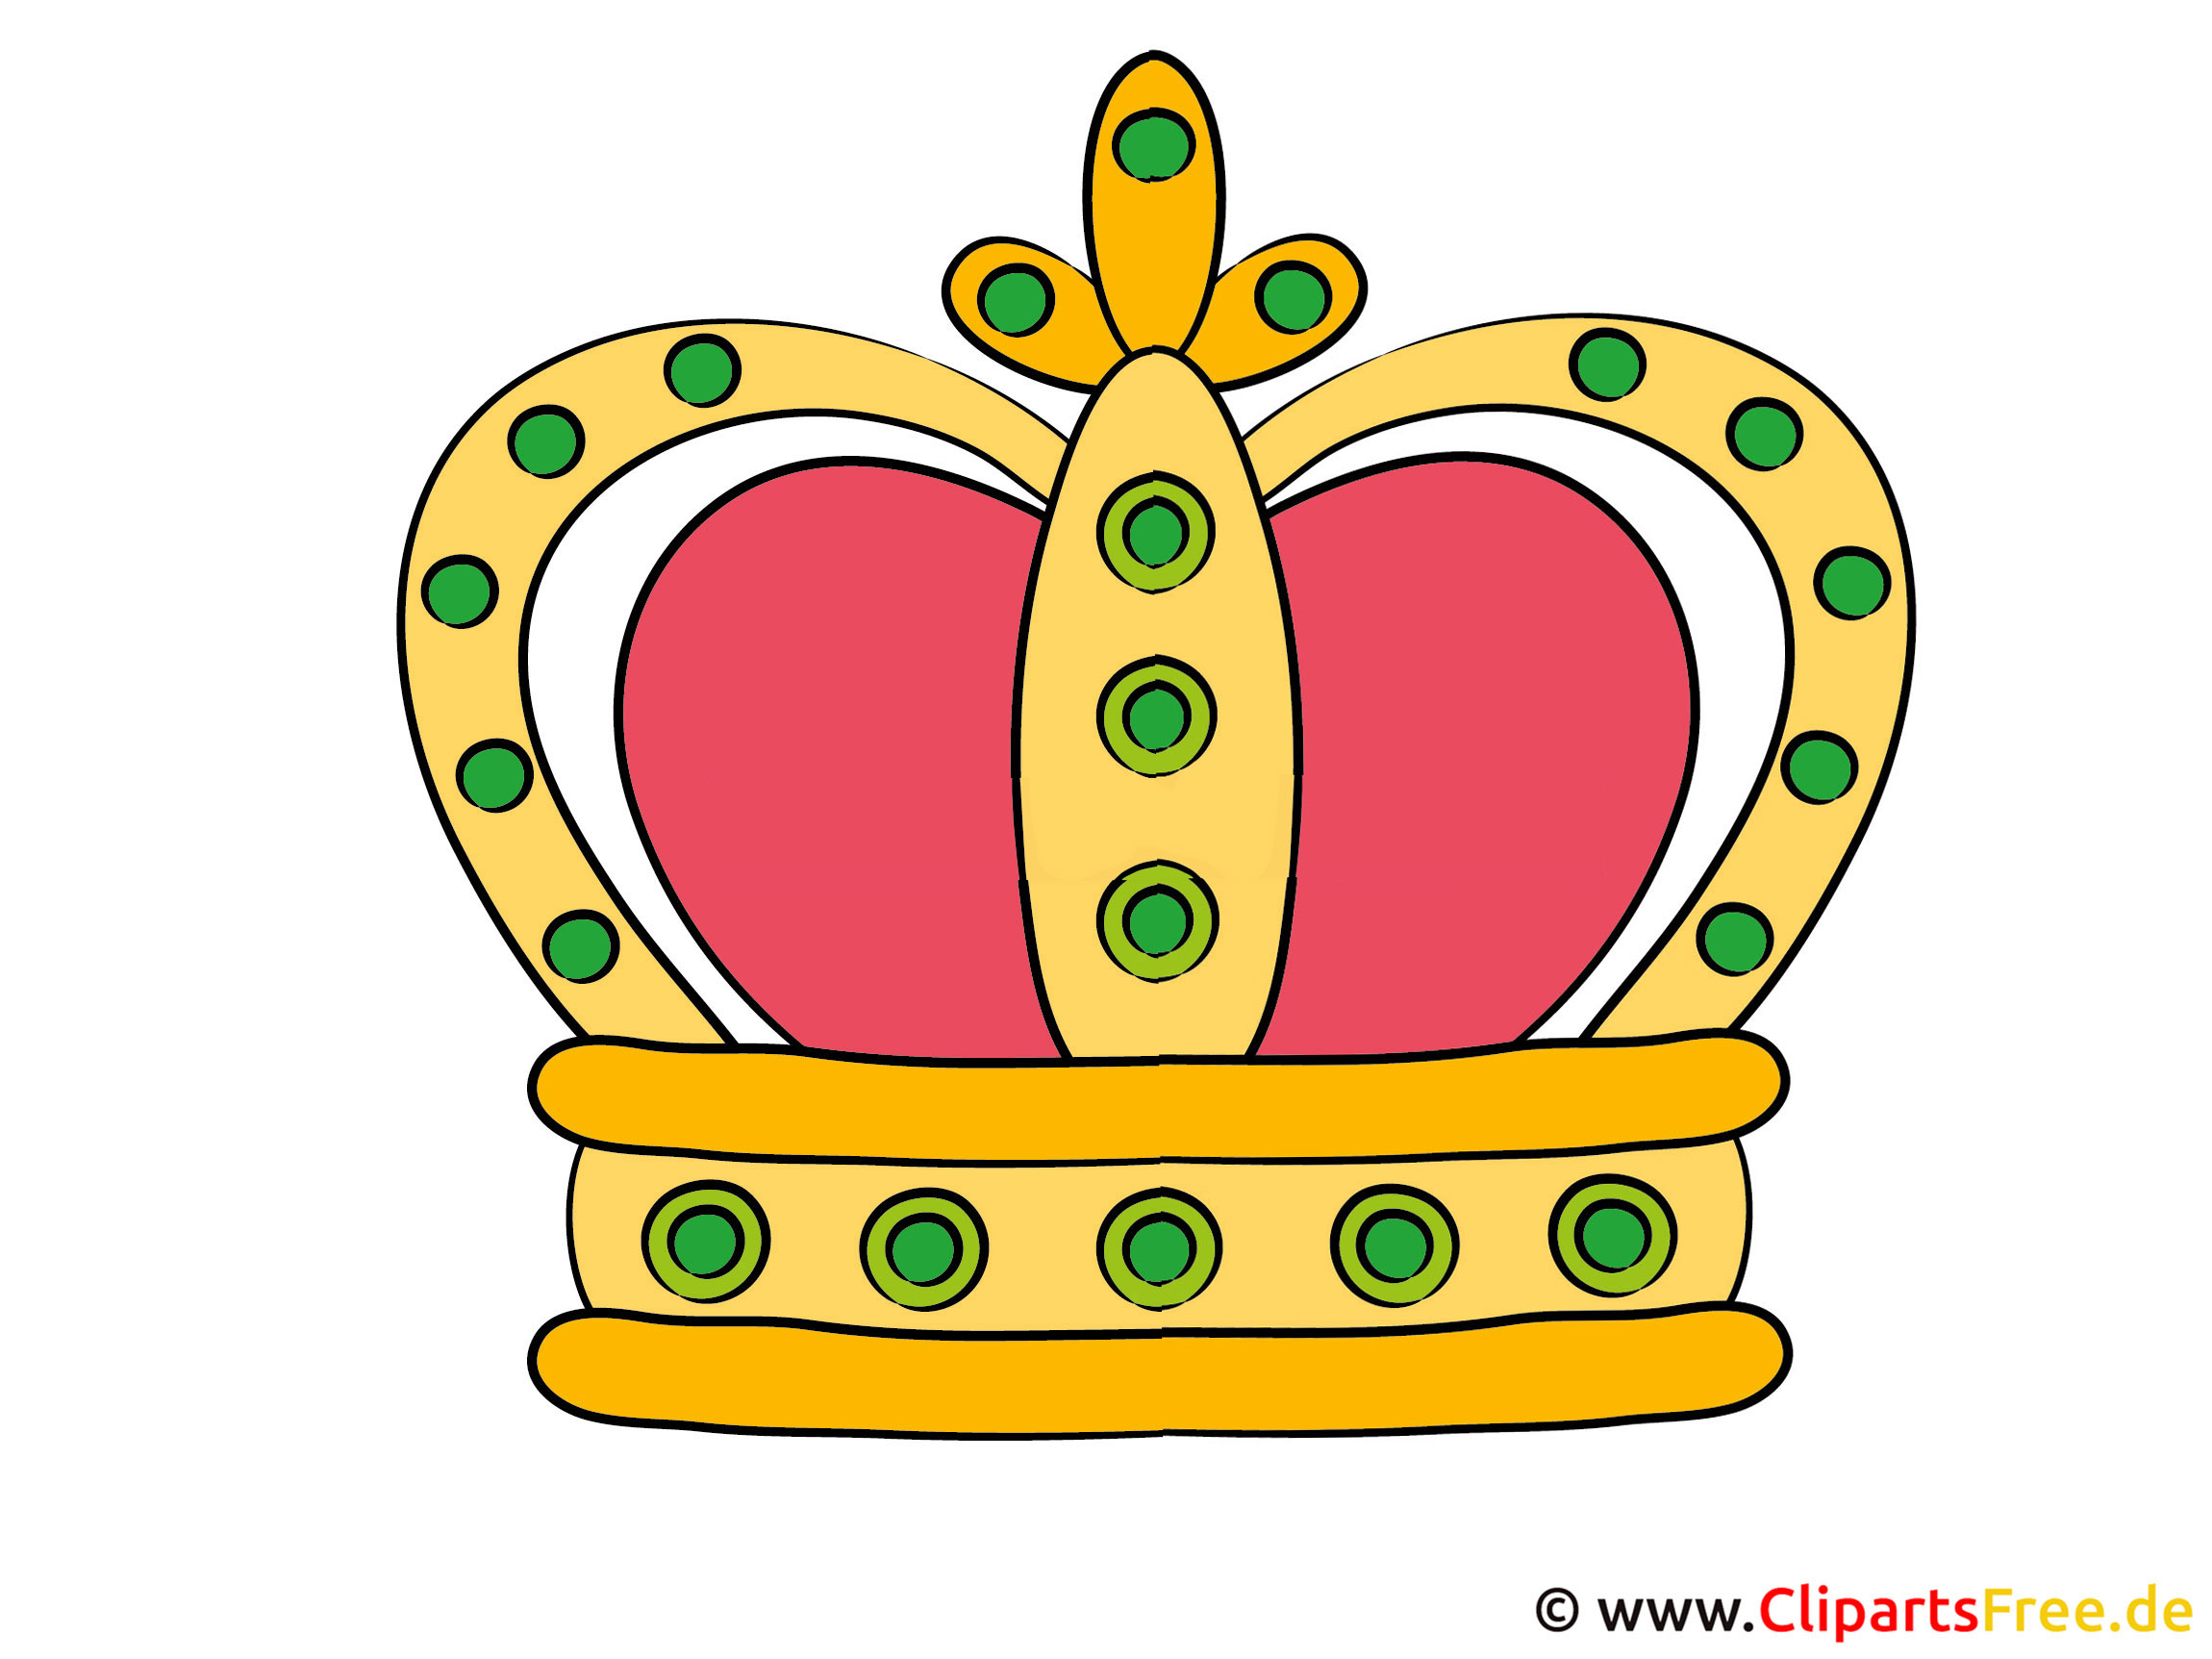 krone clipart  bild  cartoon  illustration  image clip art crowns for kings clip art crown of roses